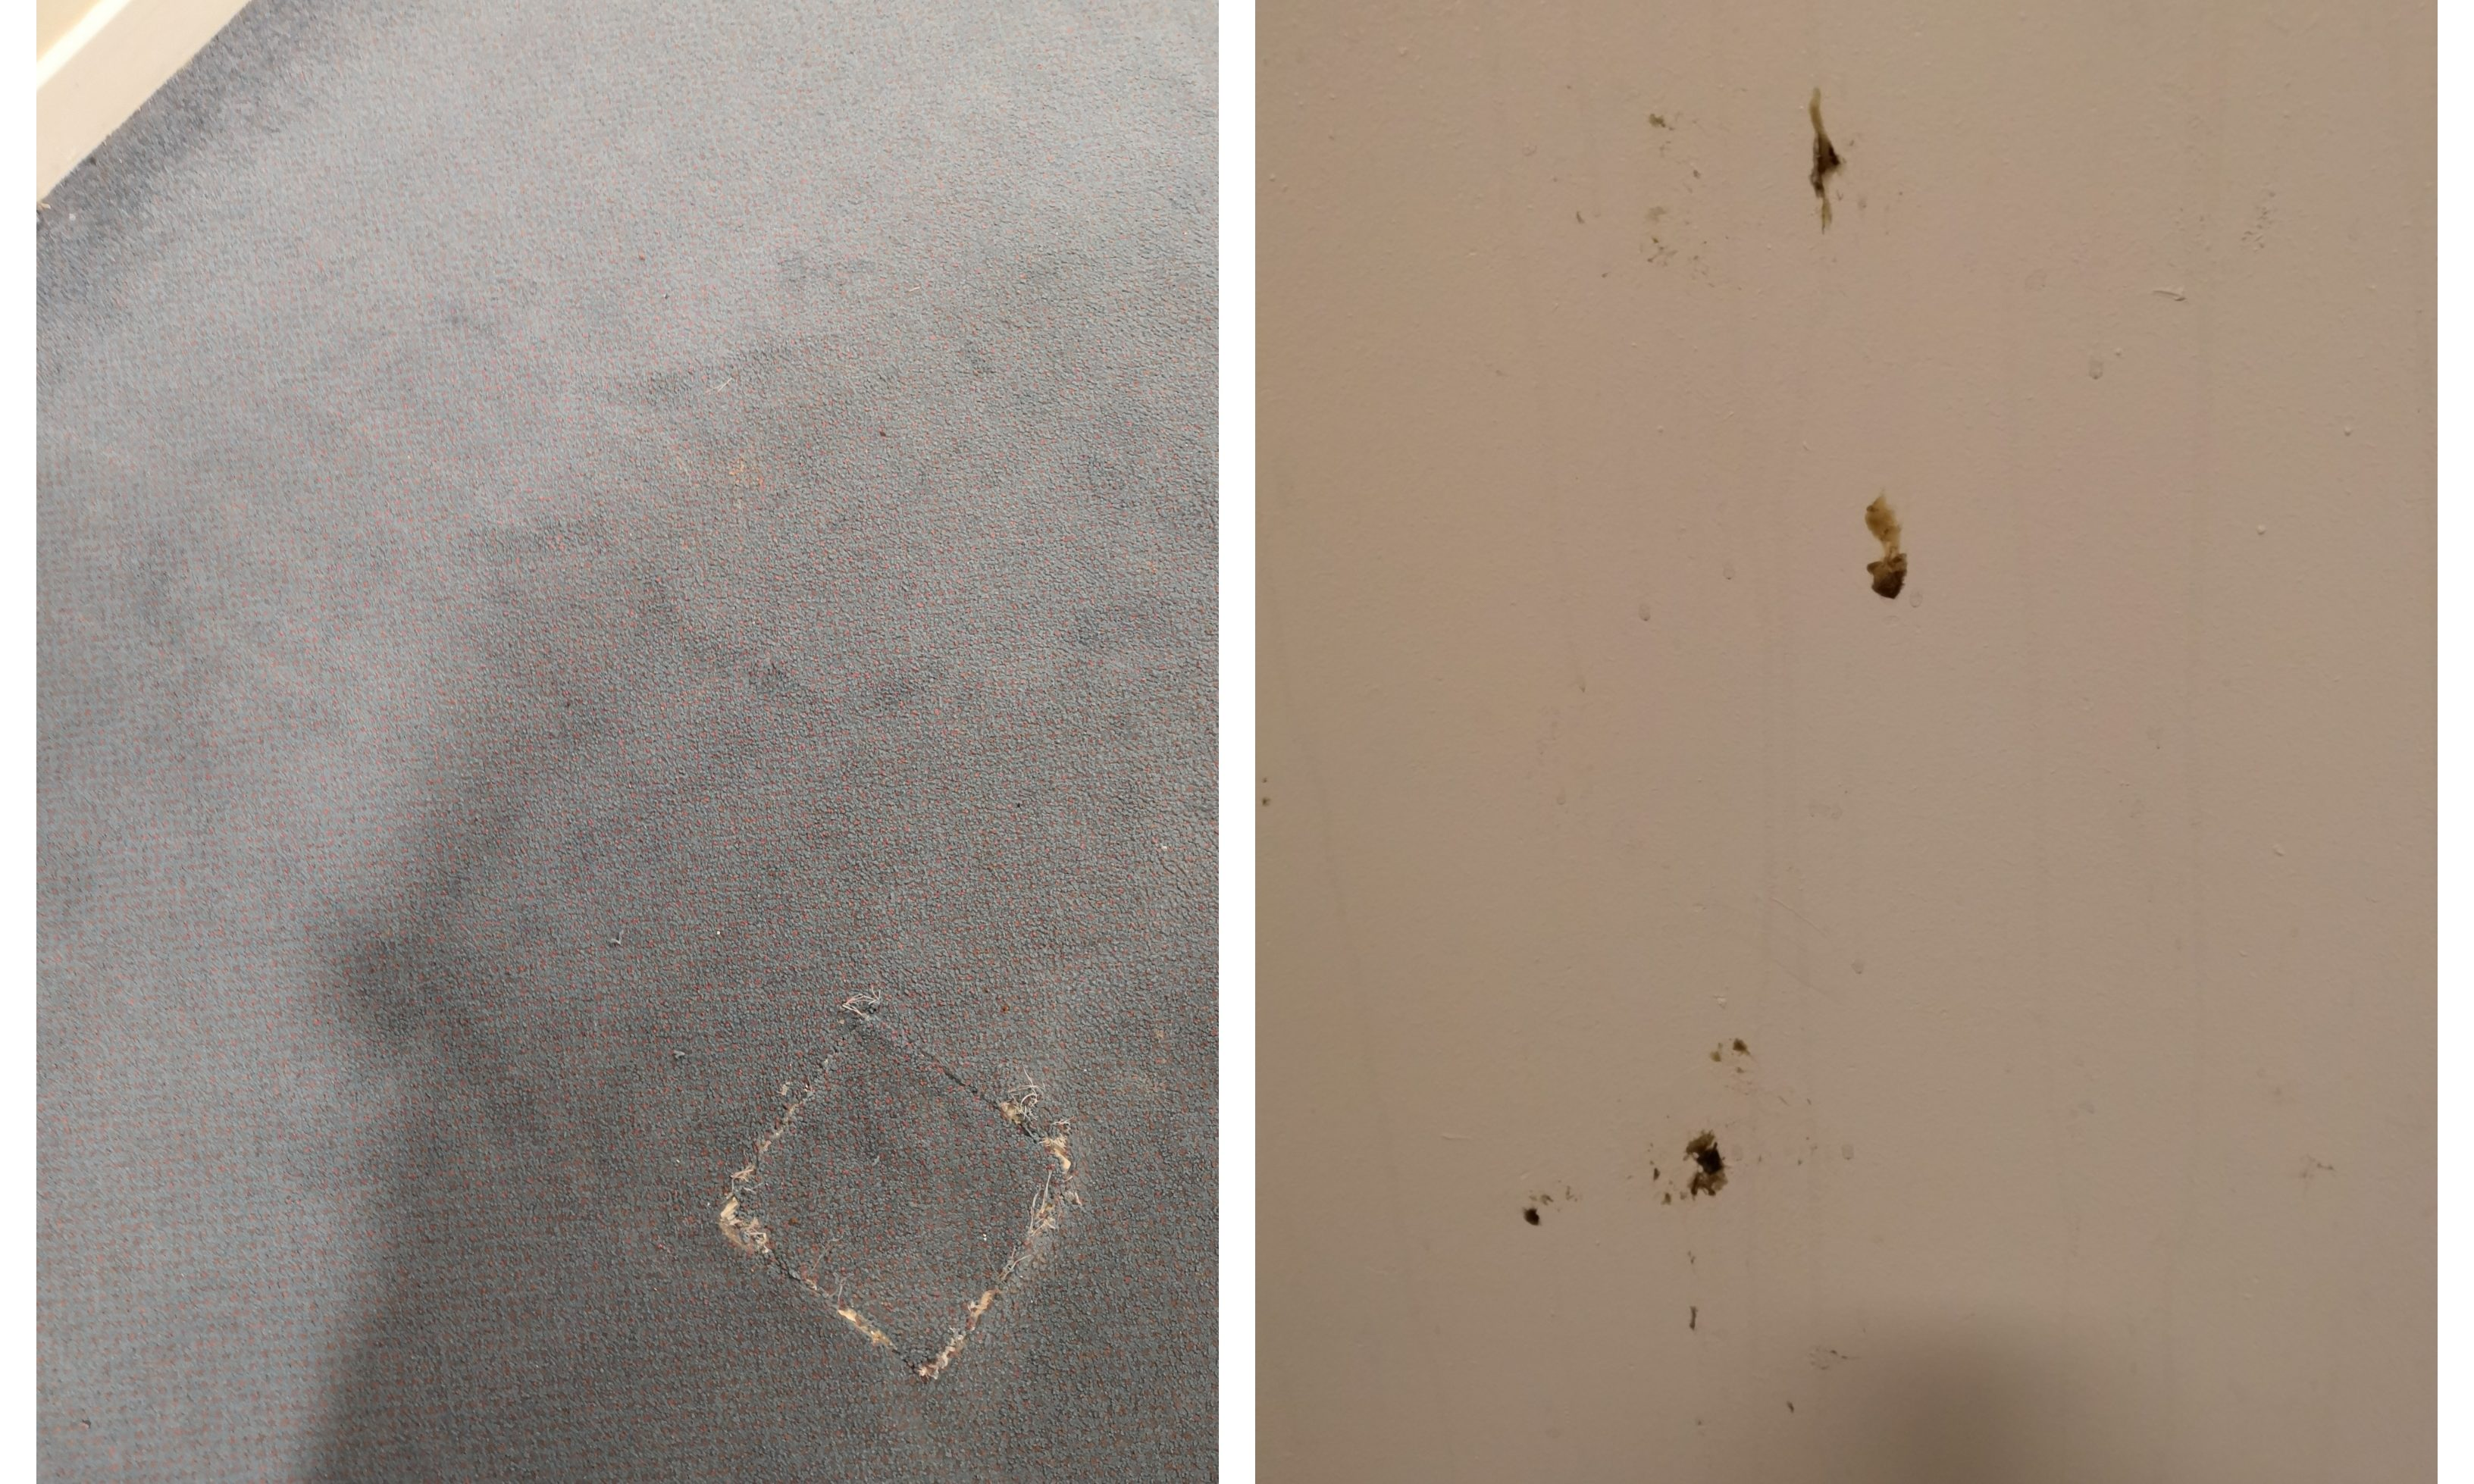 The carpet (l) and walls (r) have not been cleaned for months